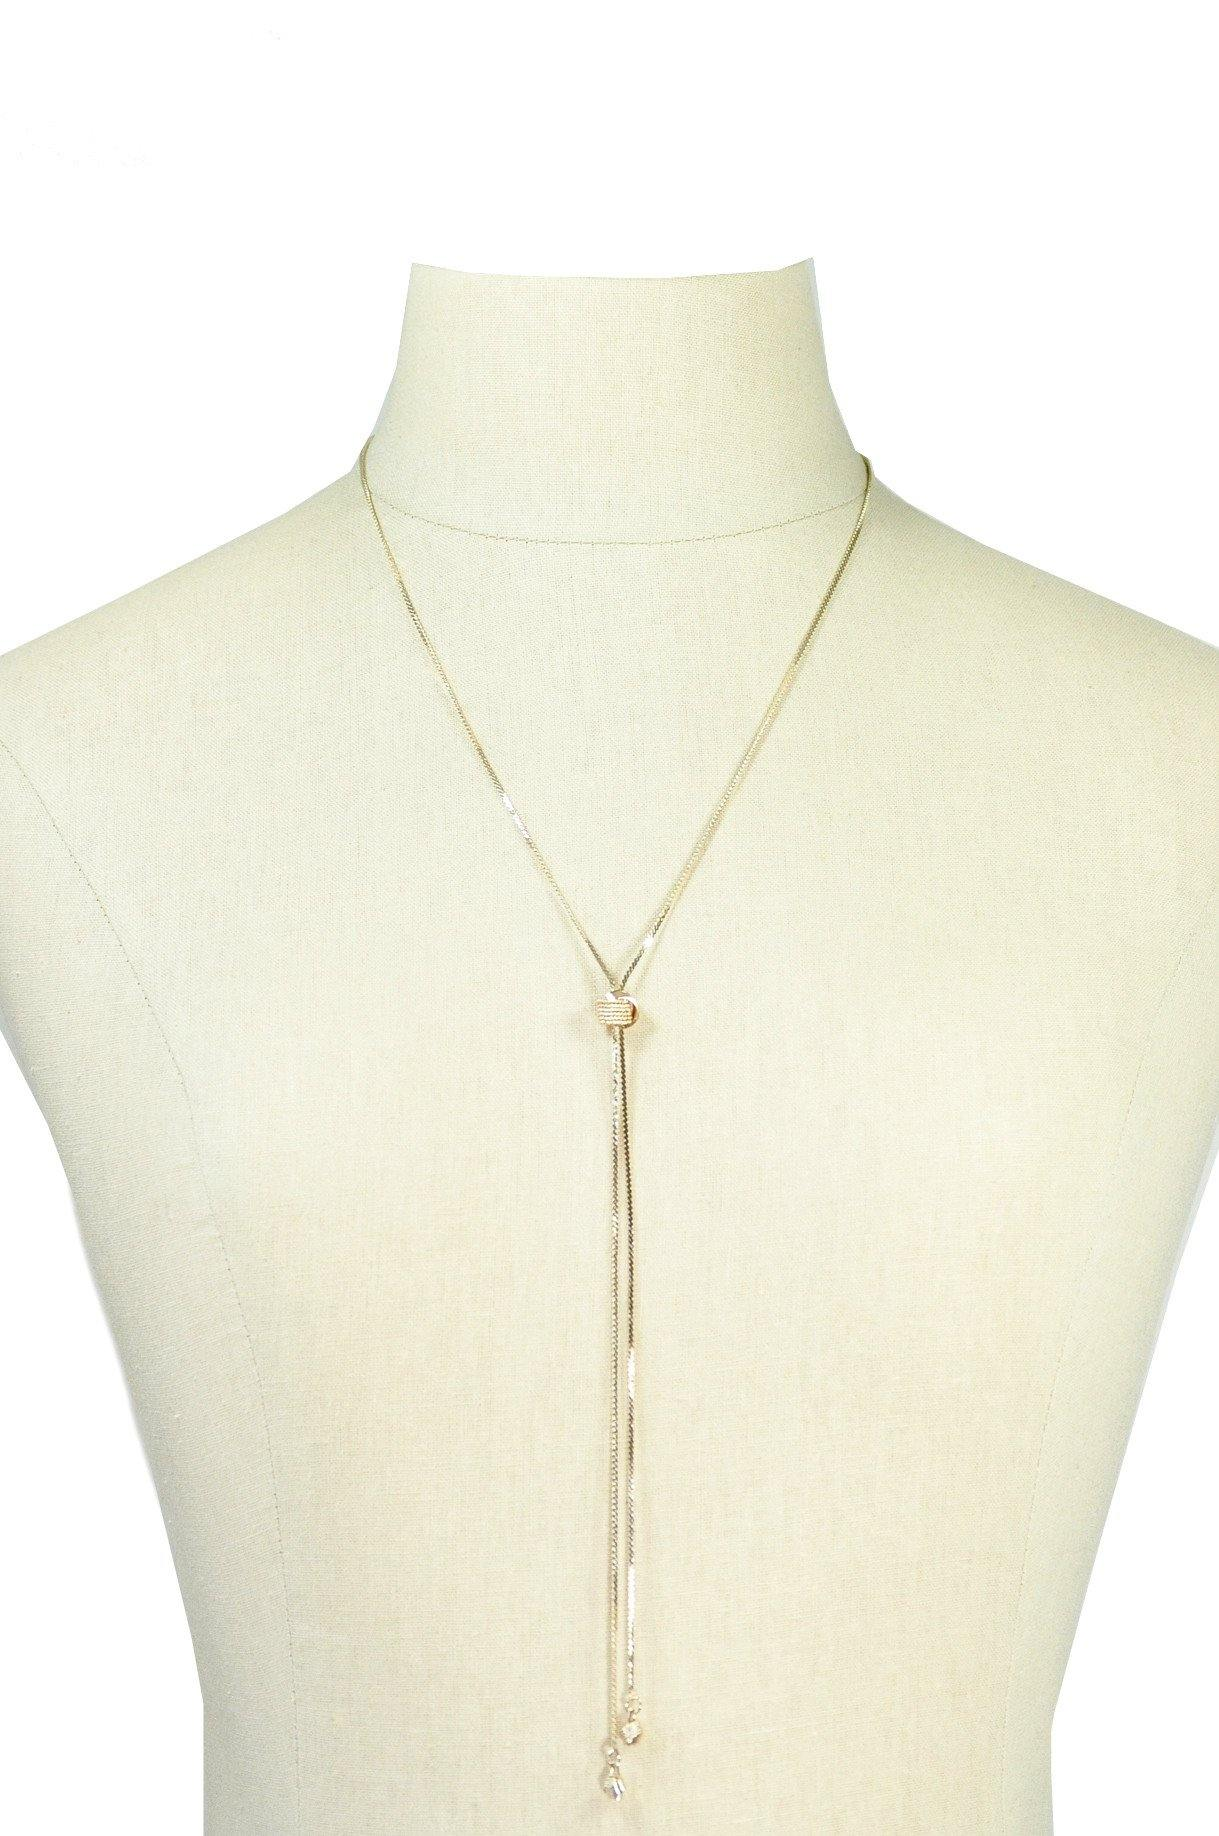 70's Emmons Dainty Lariat Necklace